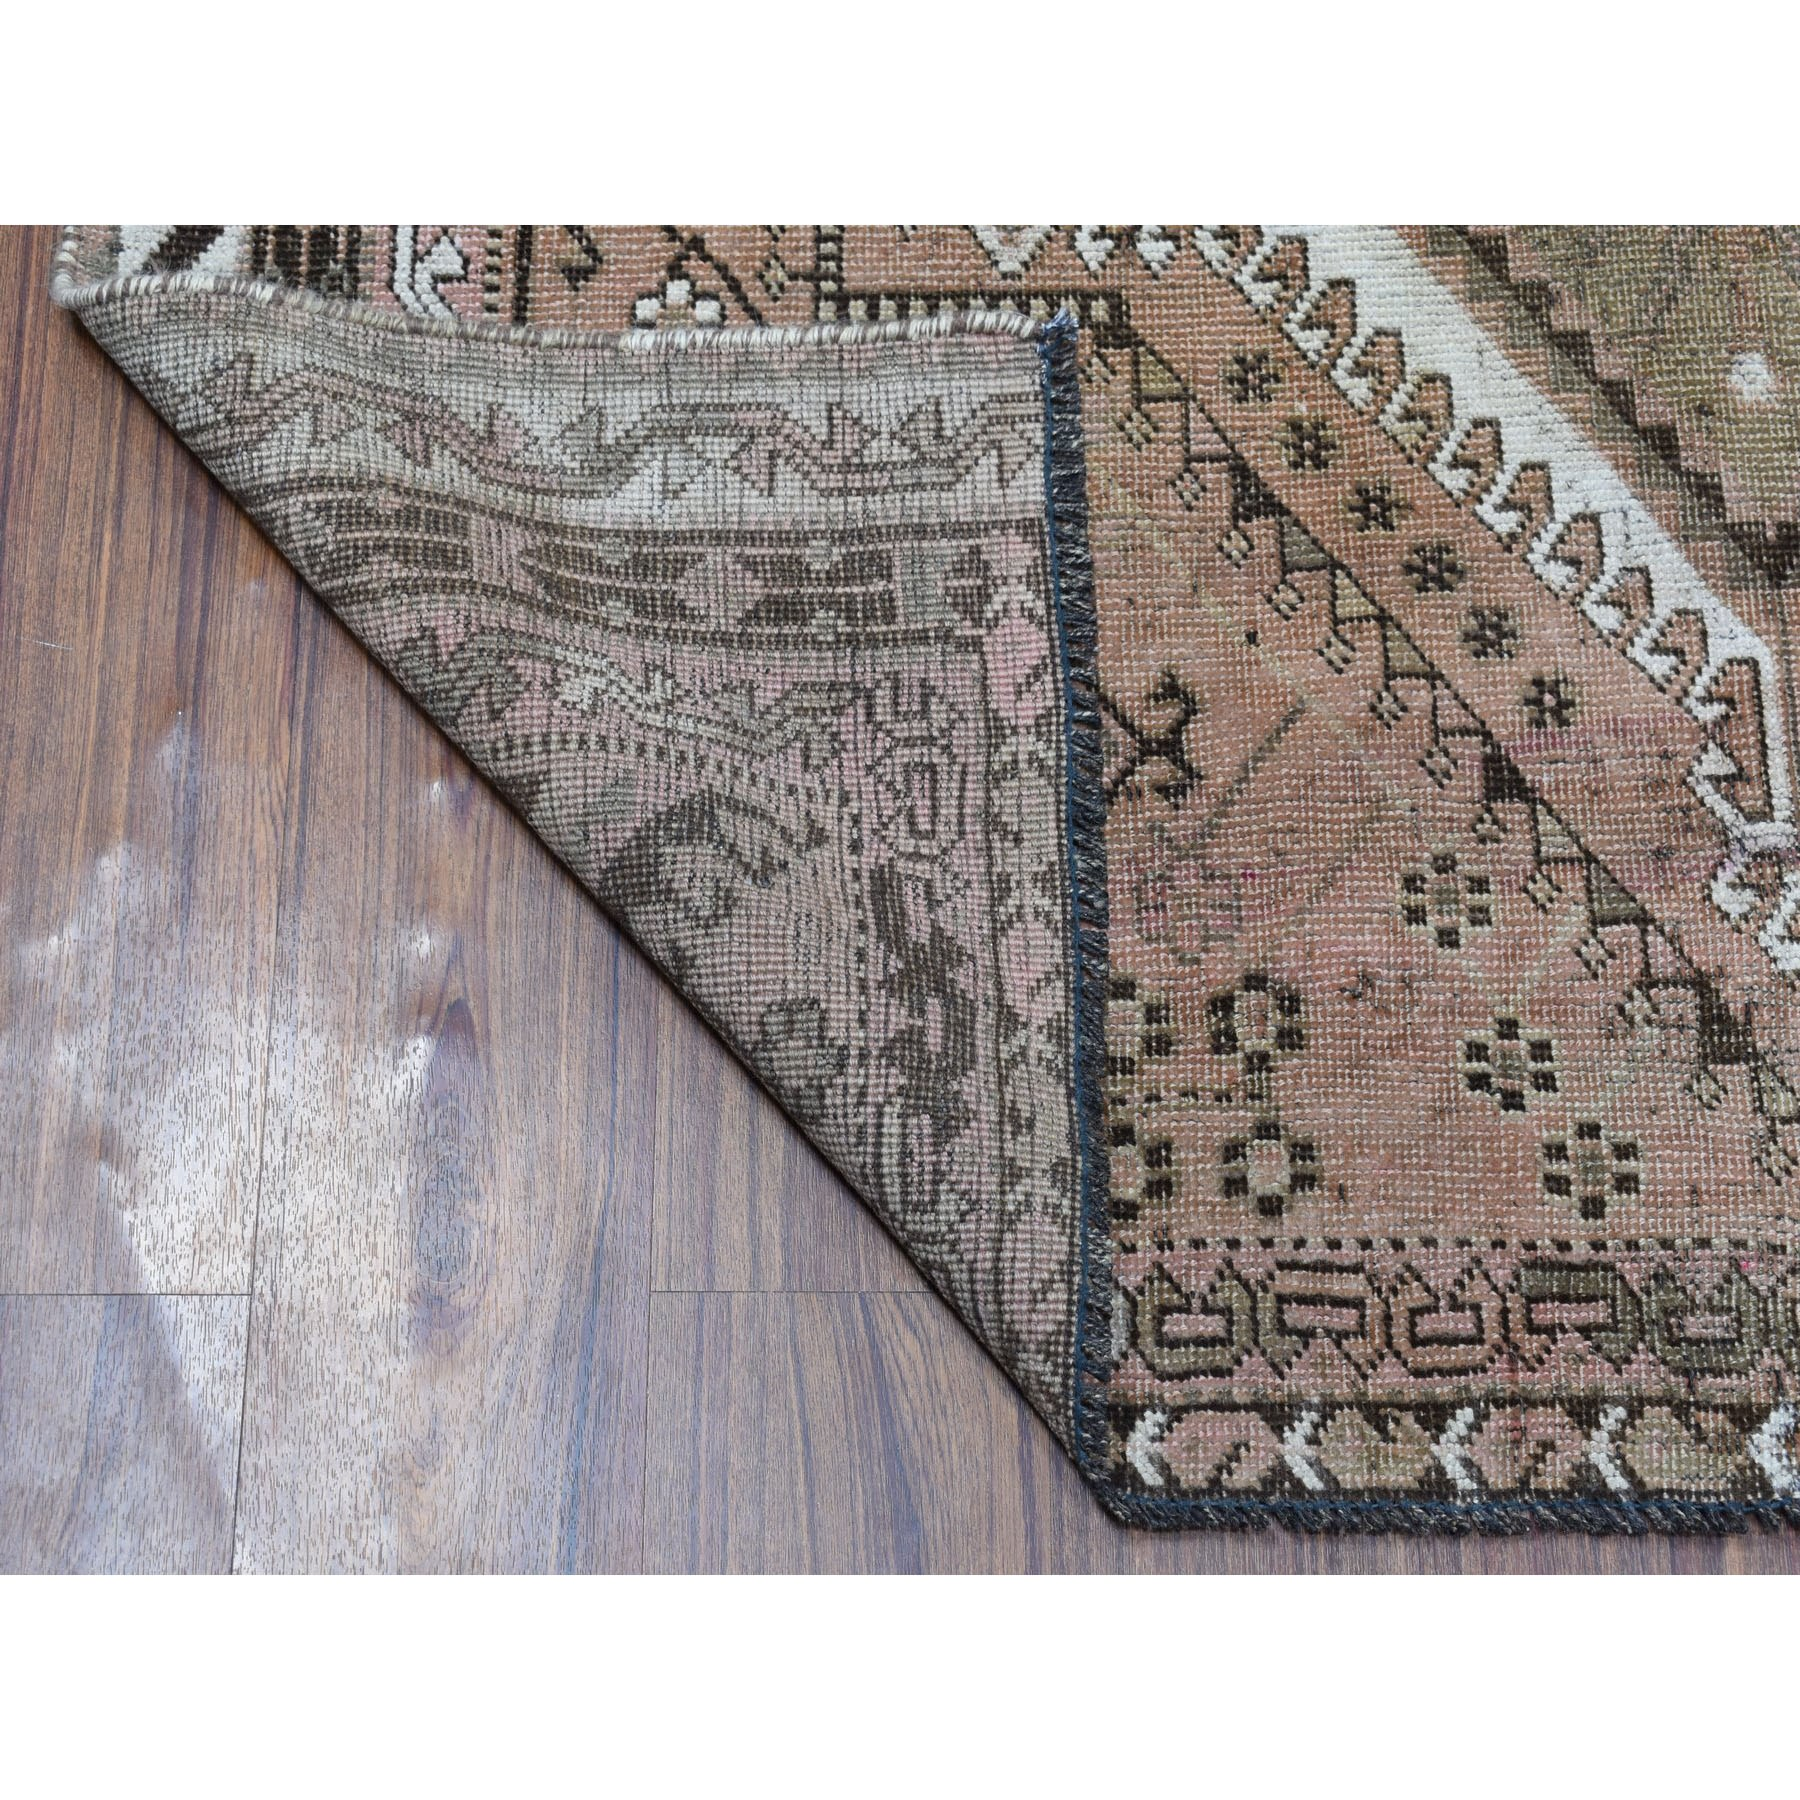 "4'9""x7'7"" Vintage And Worn Down Distressed Colors Persian Shiraz Hand Woven Bohemian Rug"